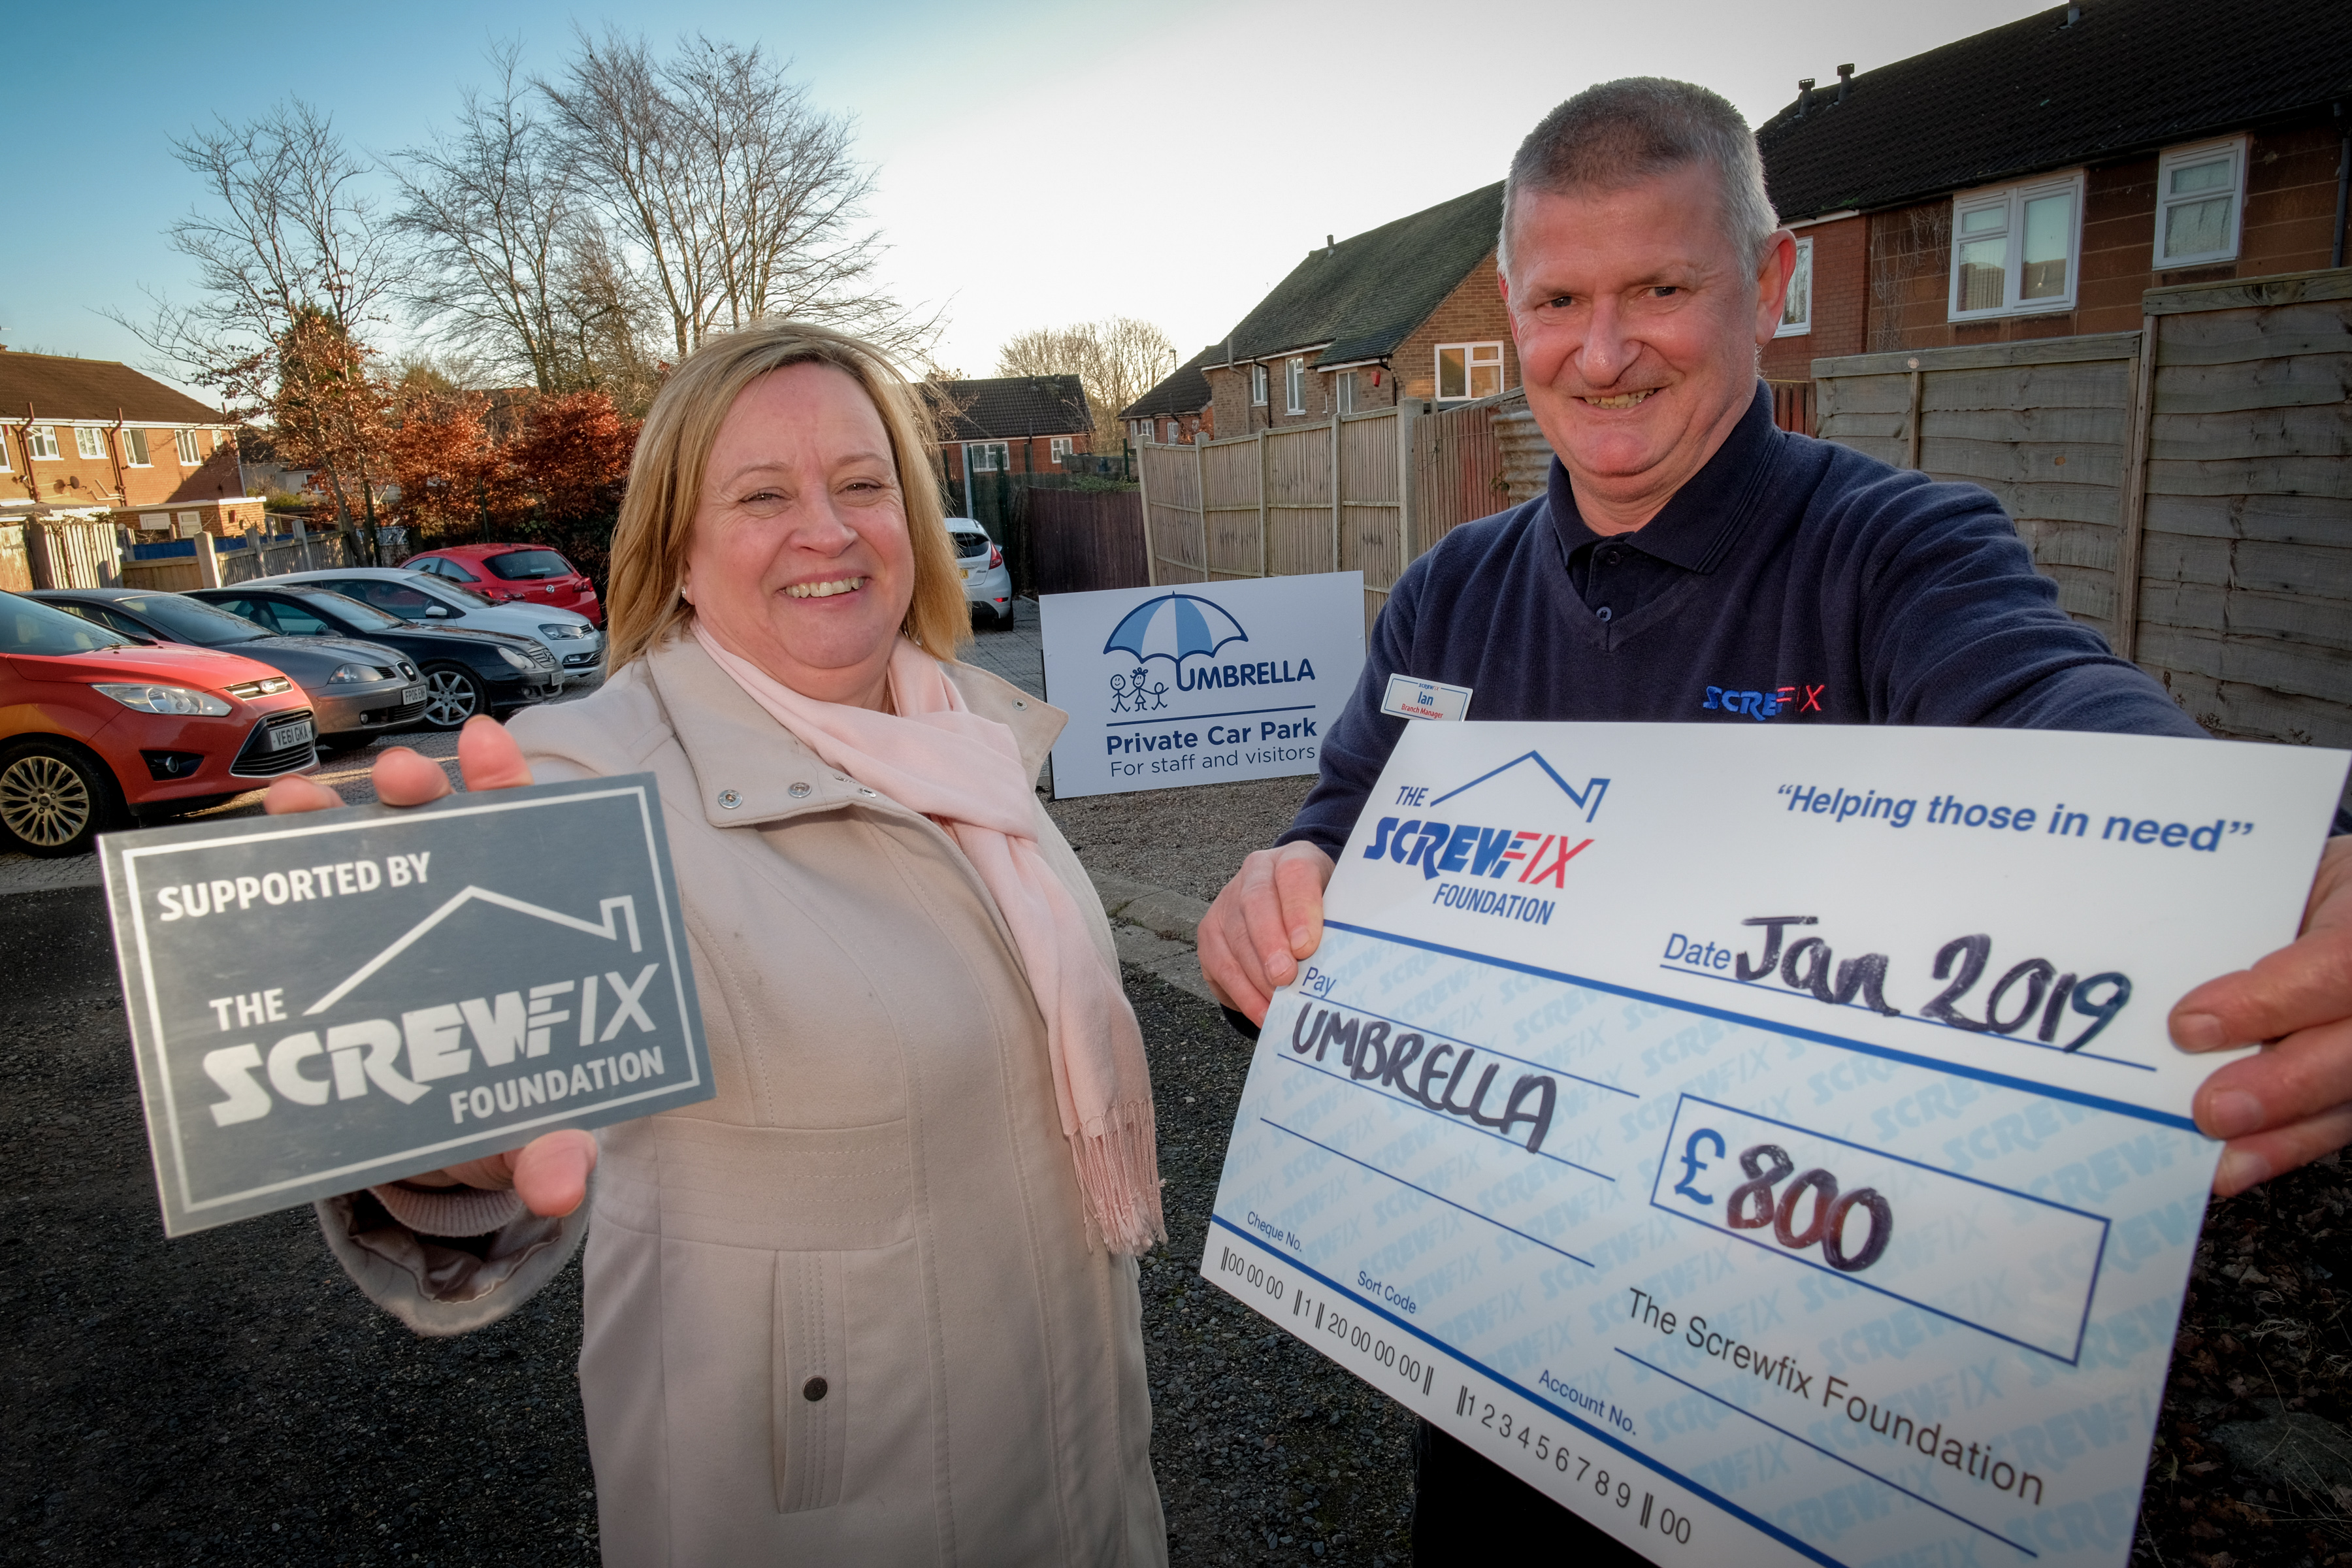 Umbrella gets a helping hand from the Screwfix Foundation